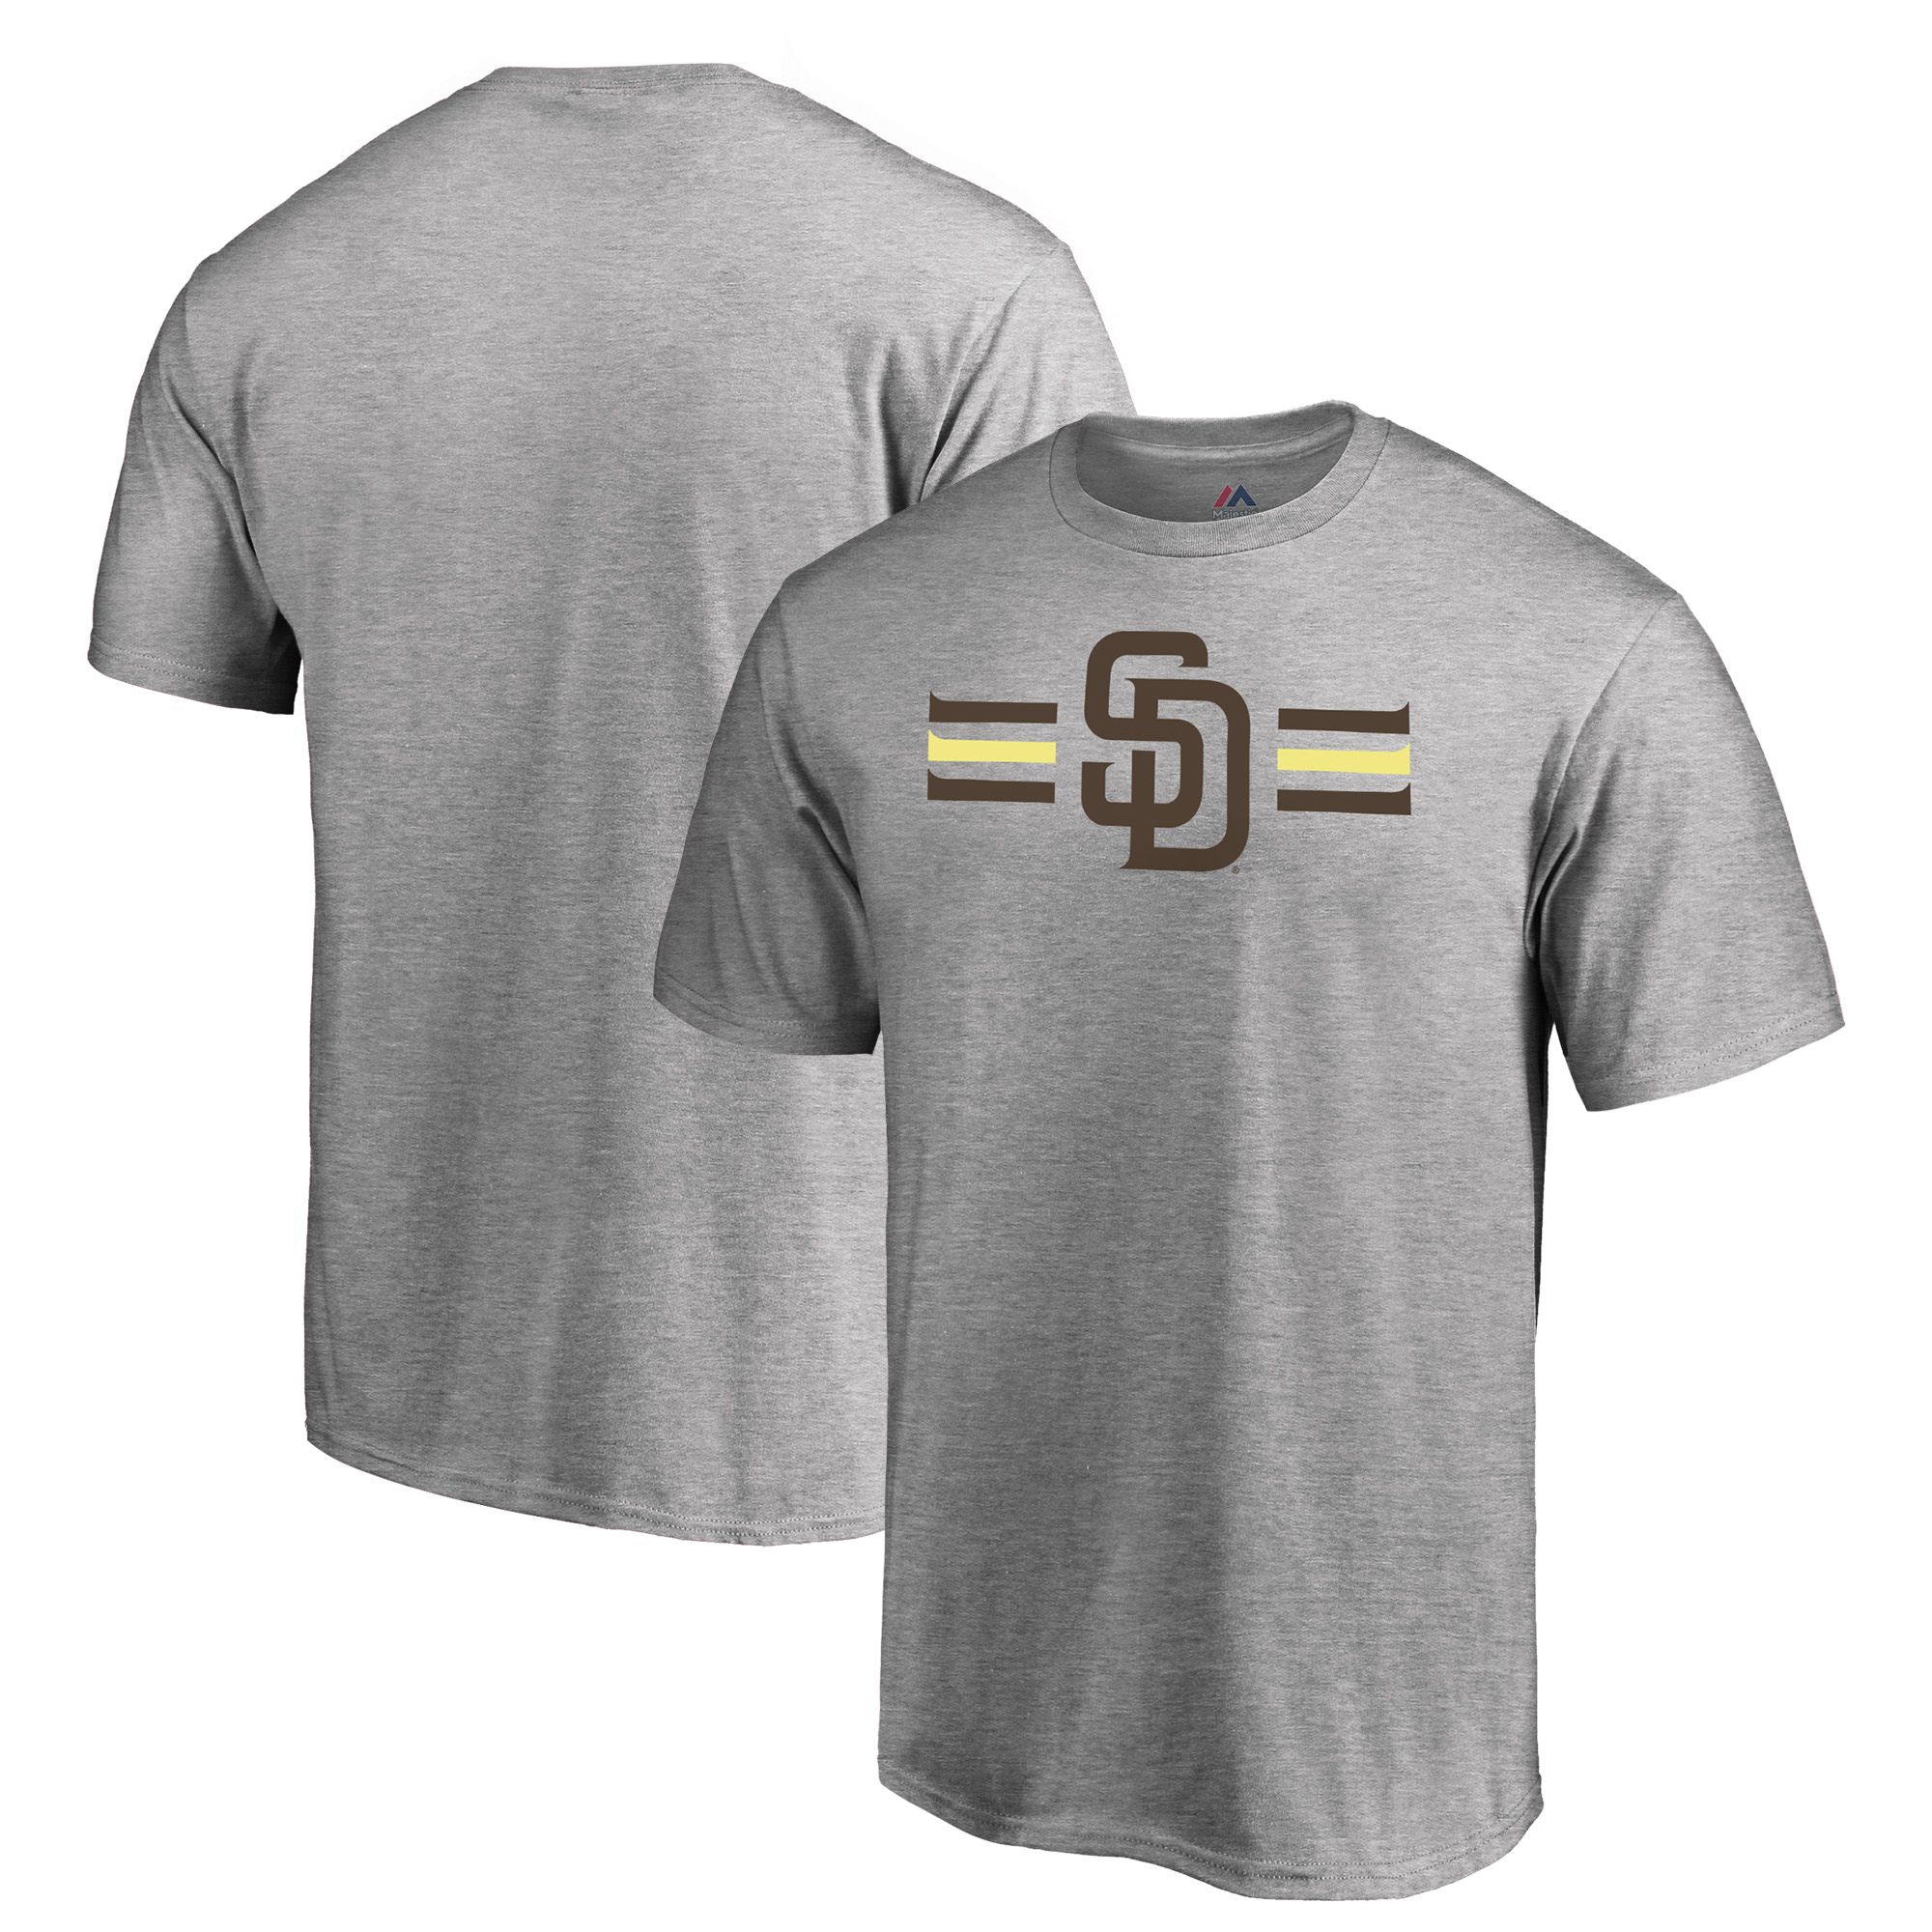 San Diego Padres Majestic 2018 Players' Weekend T-Shirt - Heather Gray